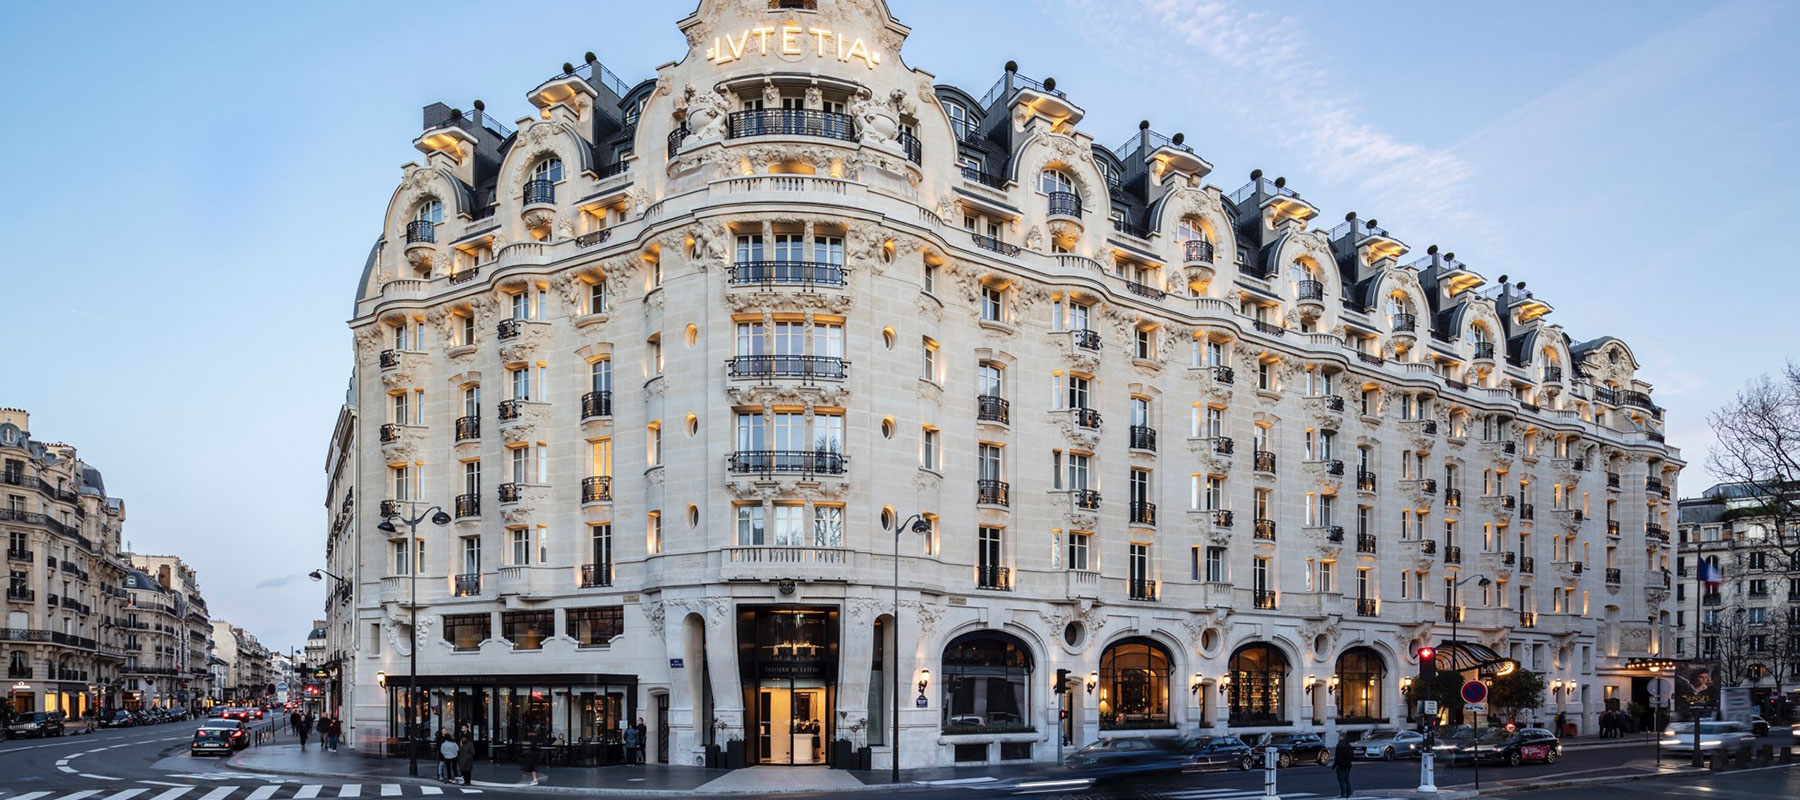 Hotel Lutetia : The mythical Parisian palace is getting into detox